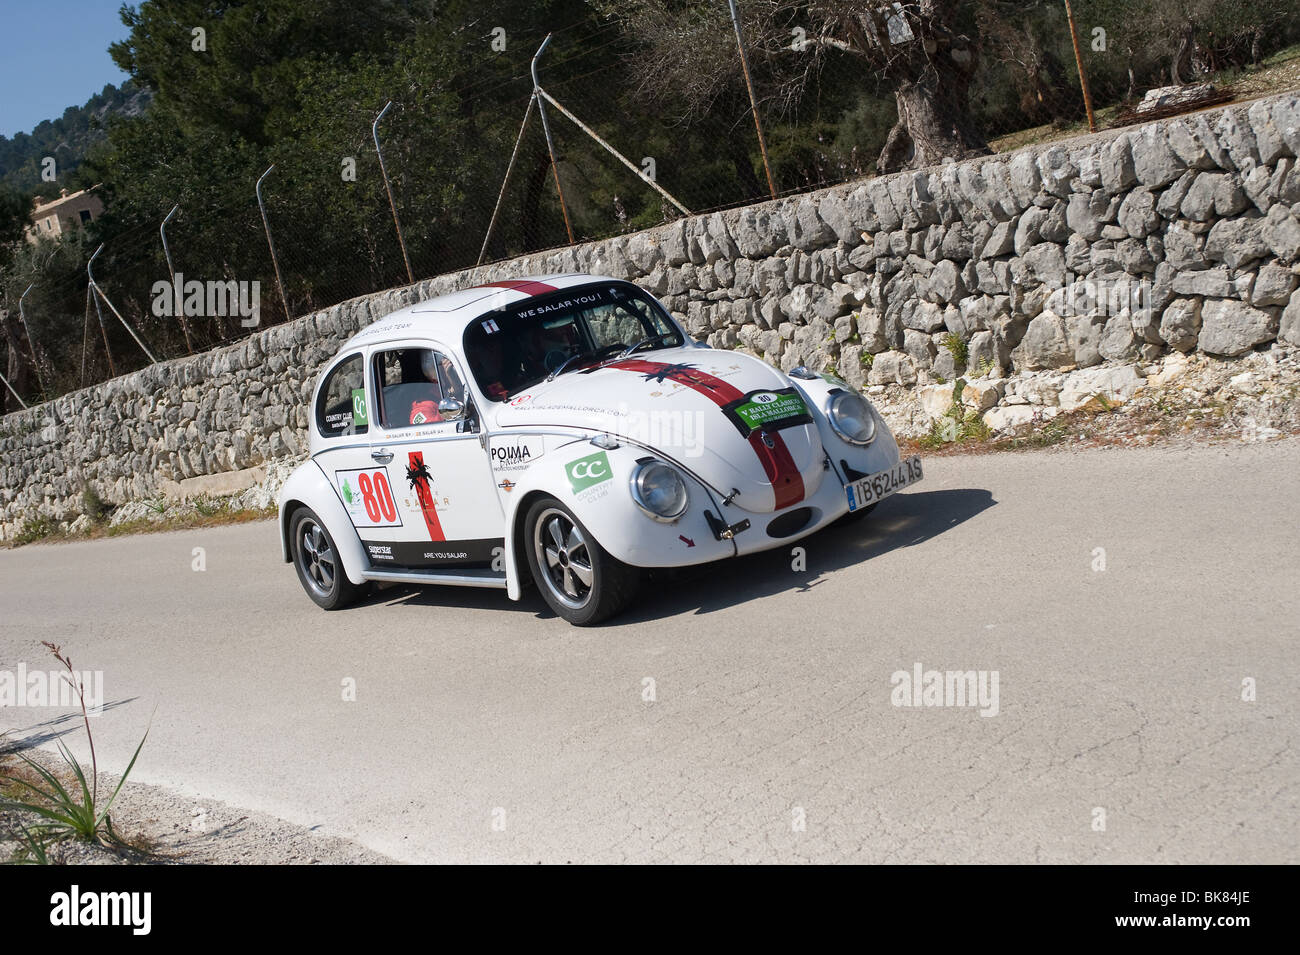 19665 VW beetle taking part in a classic car rally in Spain - Stock Image